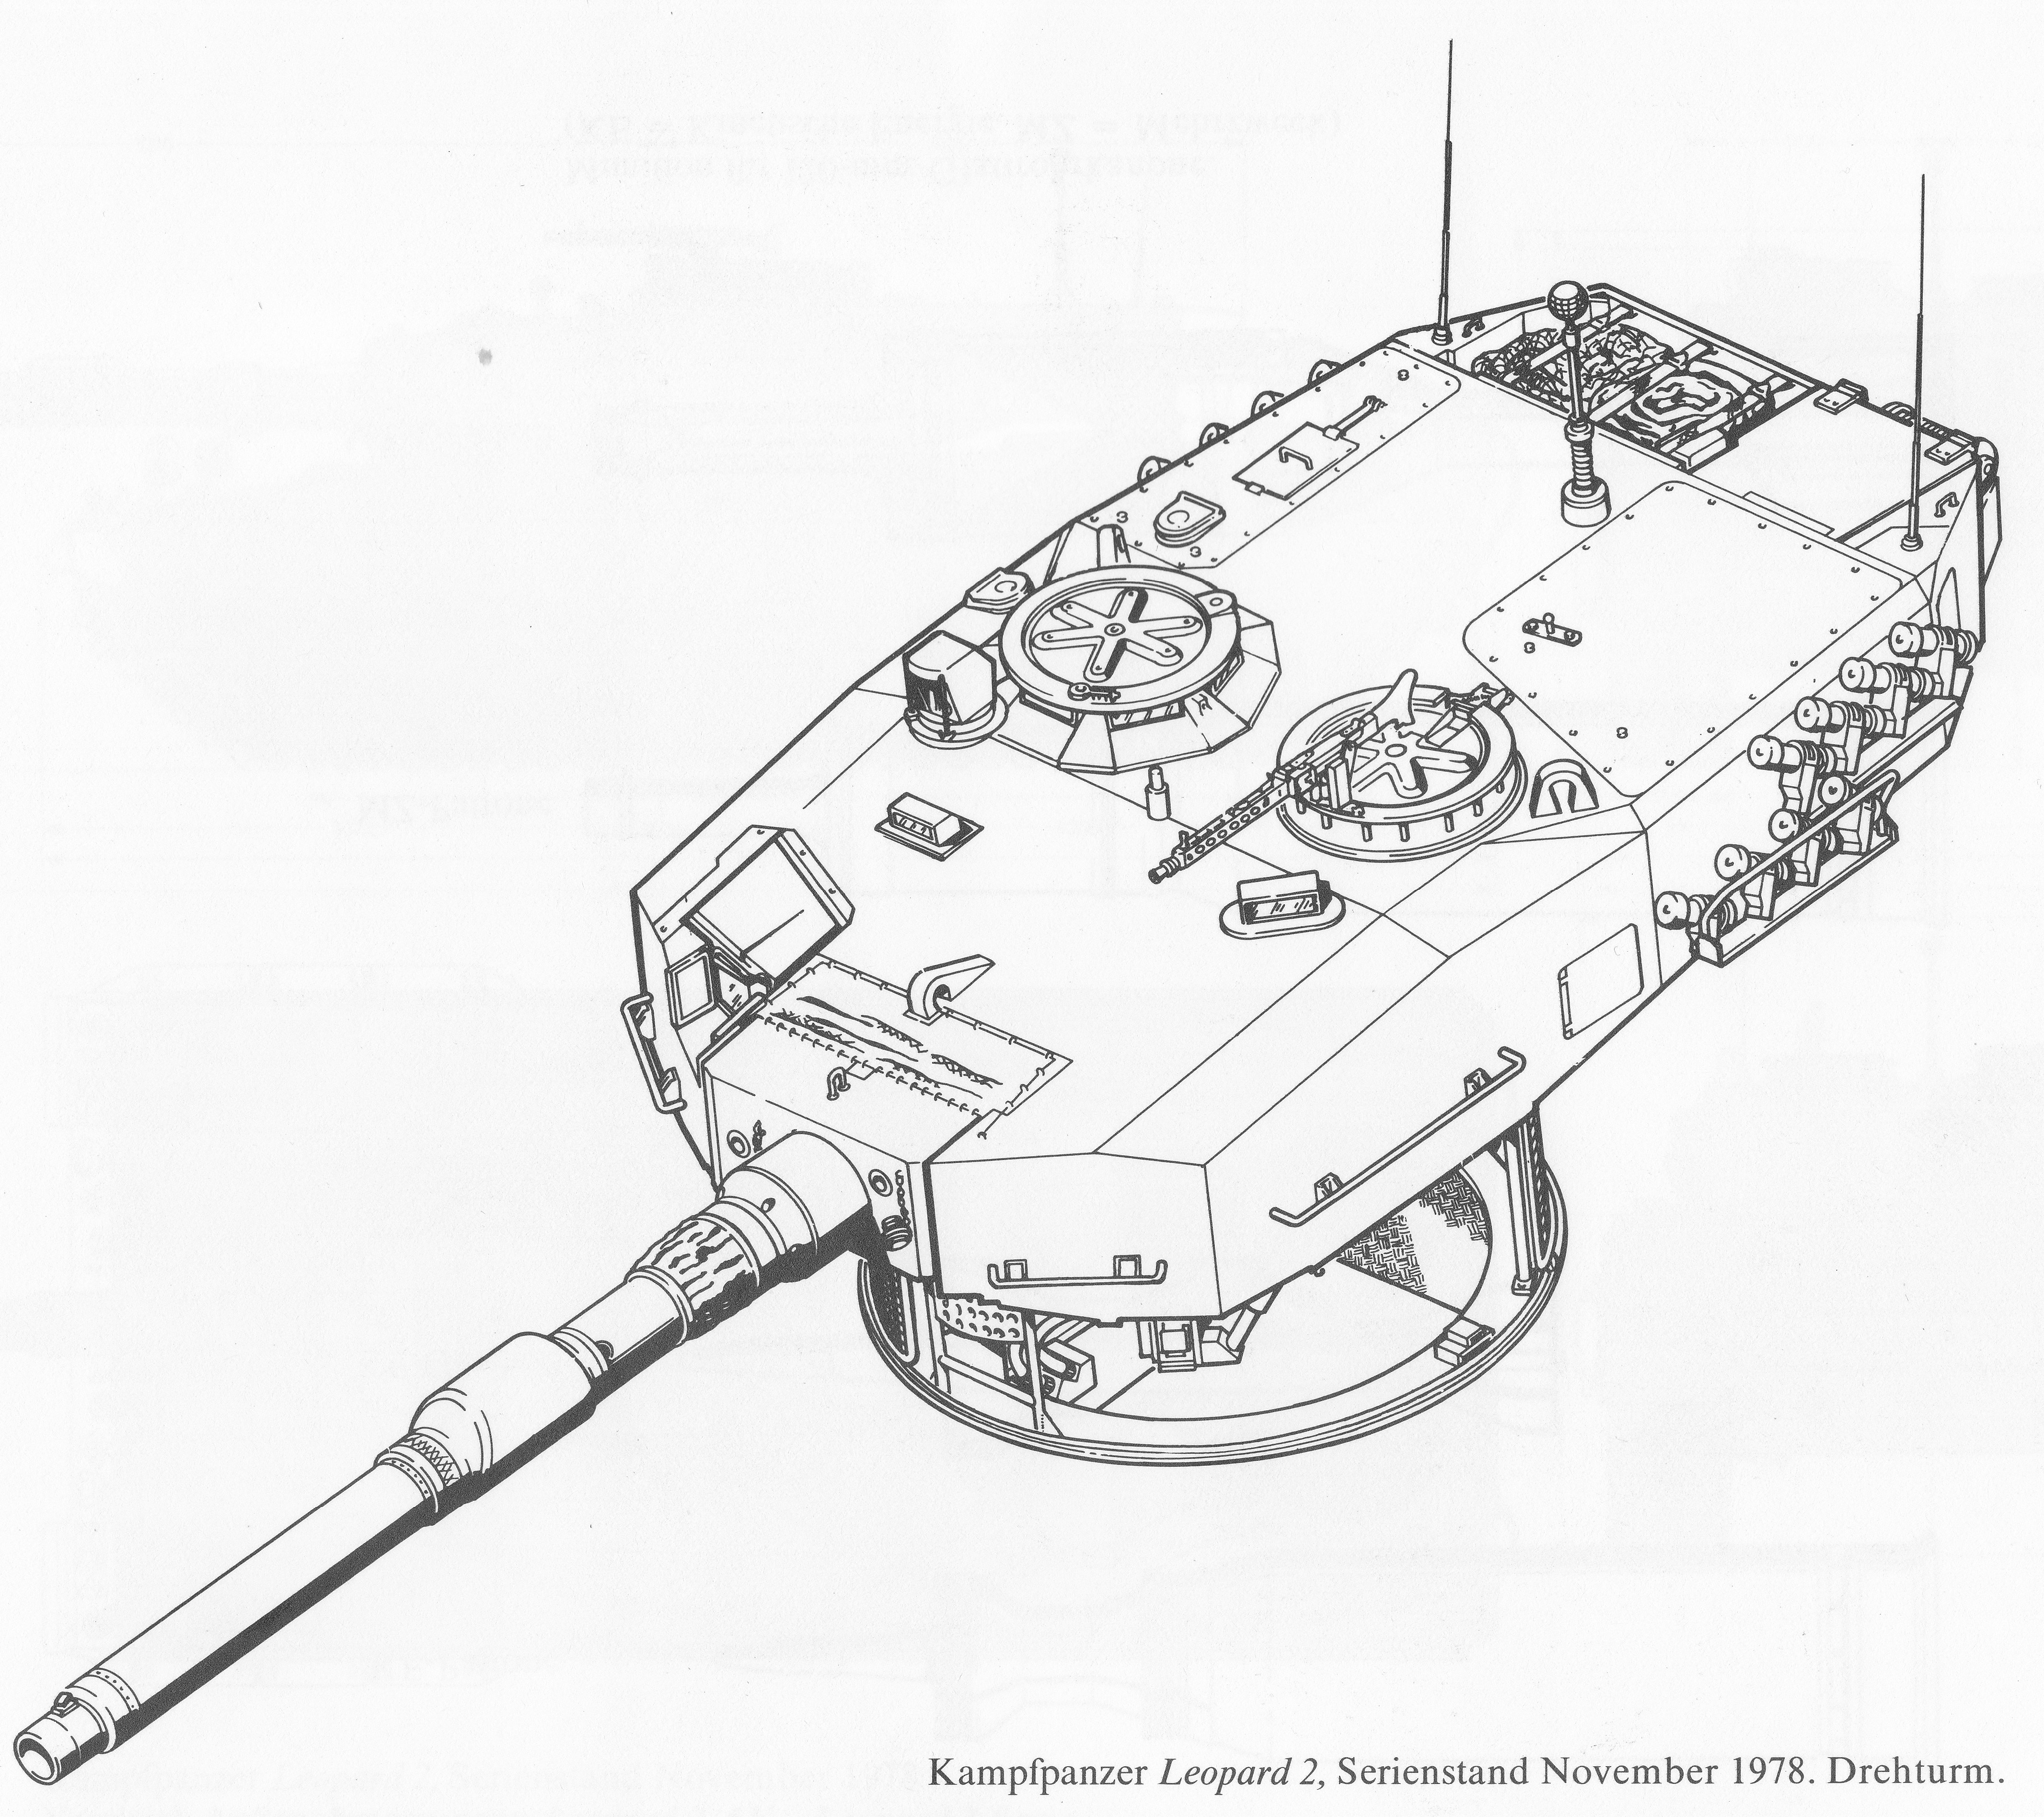 leopard 2 a0 a1 spoiler alert image intensive page 13 105Mm Tank Round Fired Practice k fpanzer leopard 2 serienstand novemb